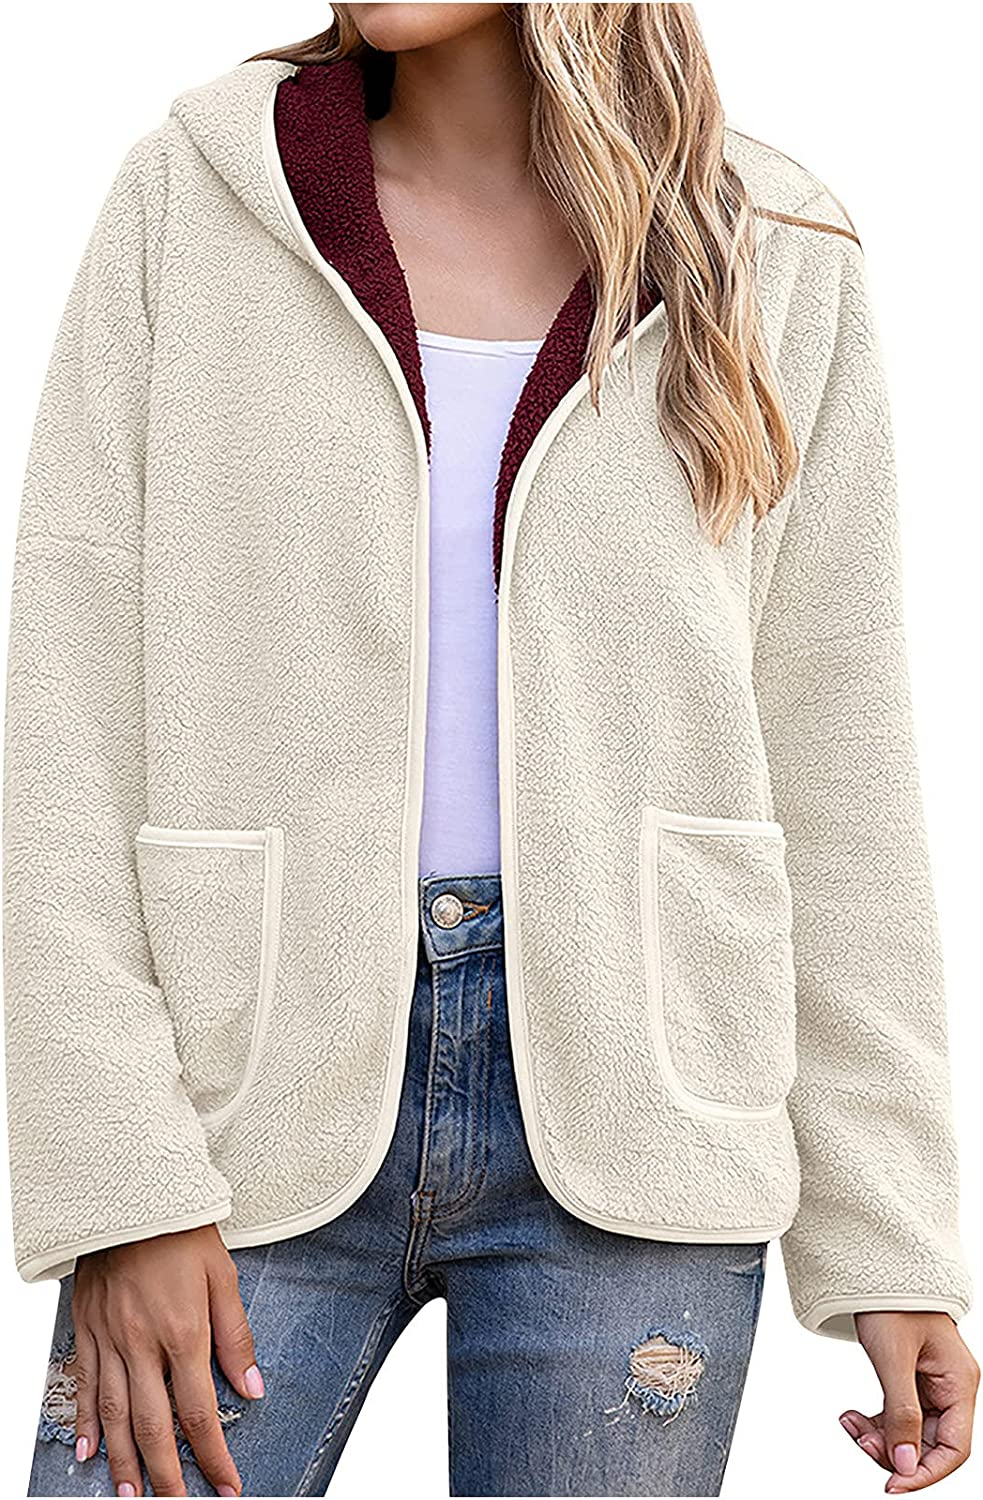 Women's Casual Plush Hooded Jacket Loose Fit Solid Color Fleece Sweater Color Block Pocket Coat Fall Winter Warm Tops